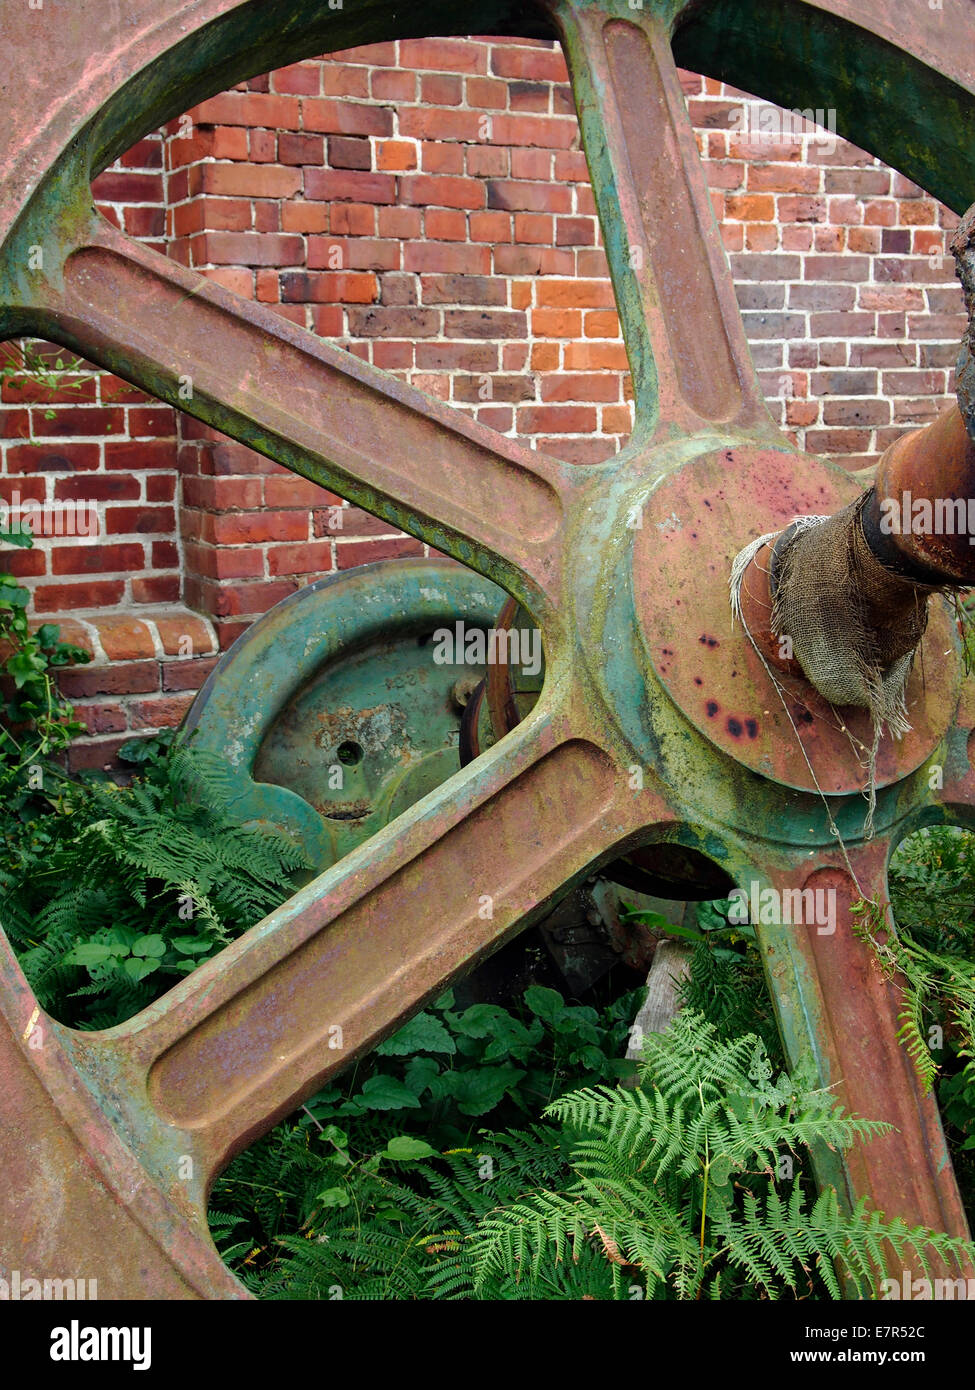 Pulley Wheels Stock Photos & Pulley Wheels Stock Images - Alamy